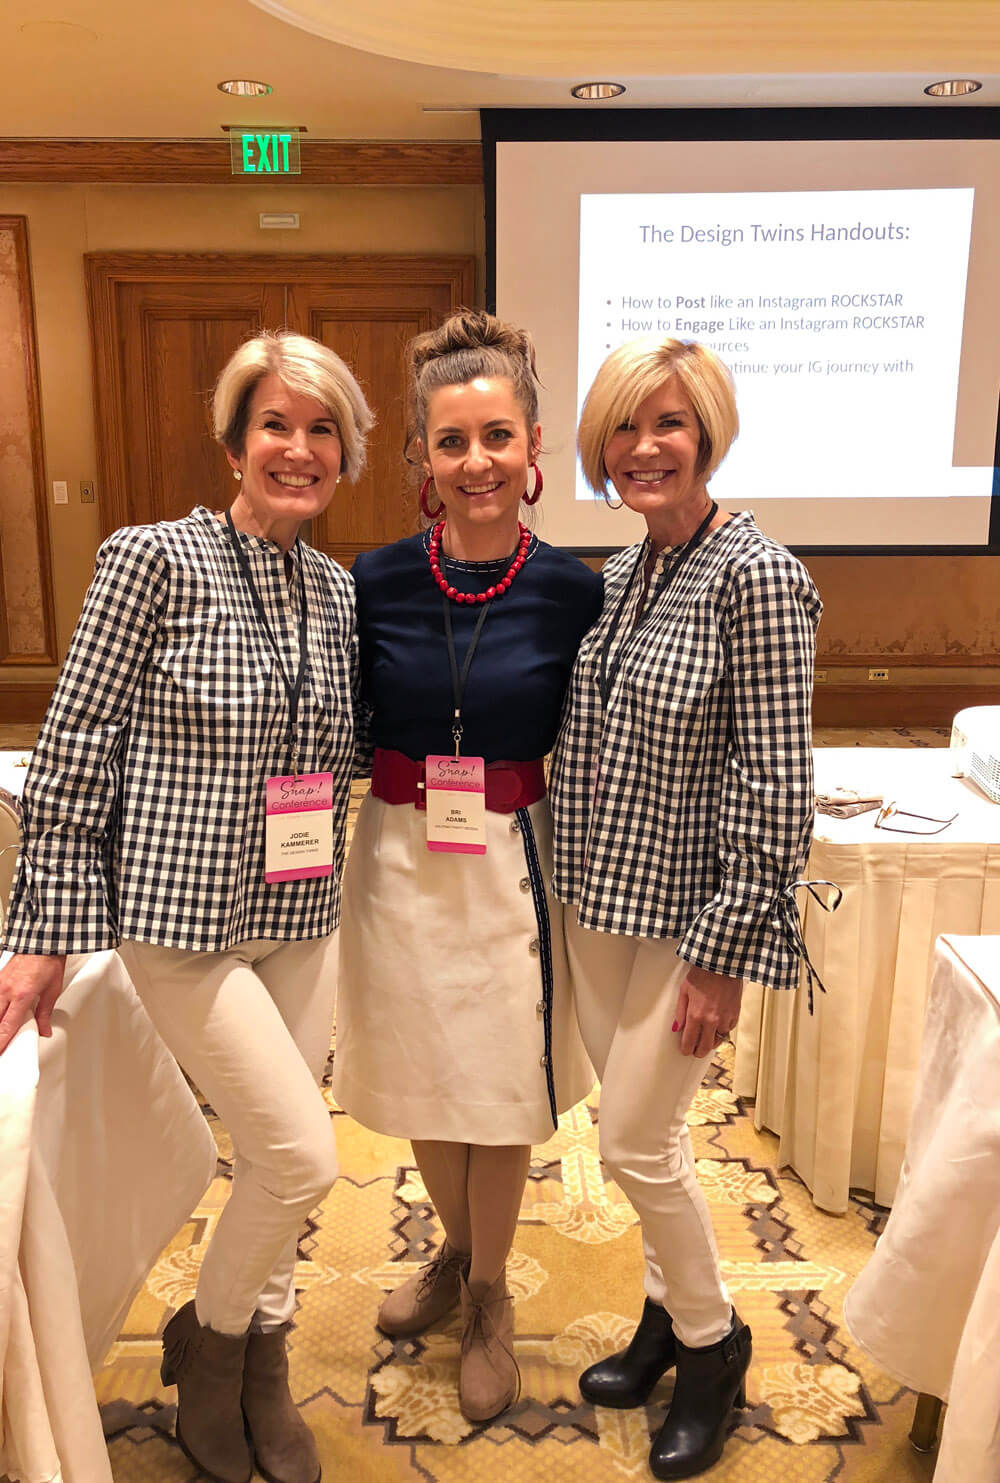 Julie and Jodie of The Design Twins posing with Bri of Halfpint Design after their Instagram course at SNAP Conference